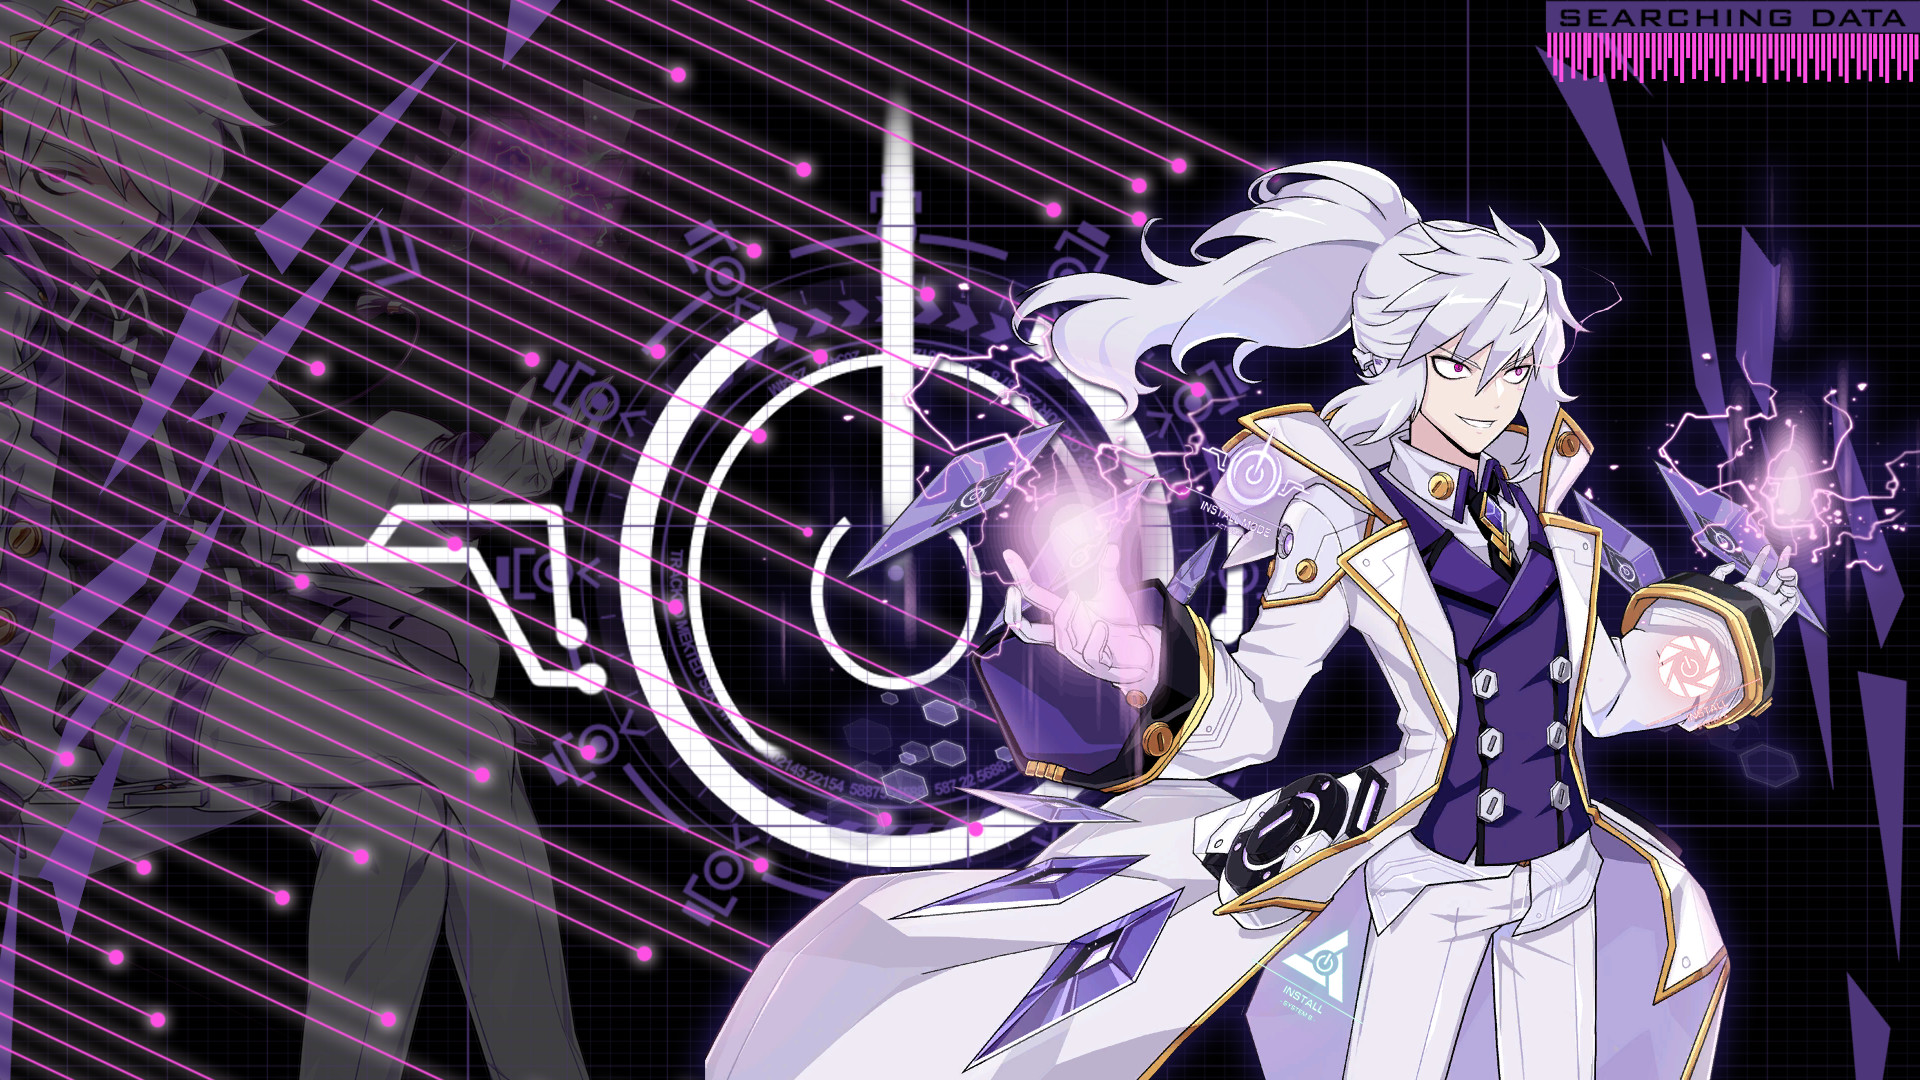 1920x1080 Elsword:Add Mastermind wallpaper by DiabolicTurkey Elsword:Add Mastermind  wallpaper by DiabolicTurkey